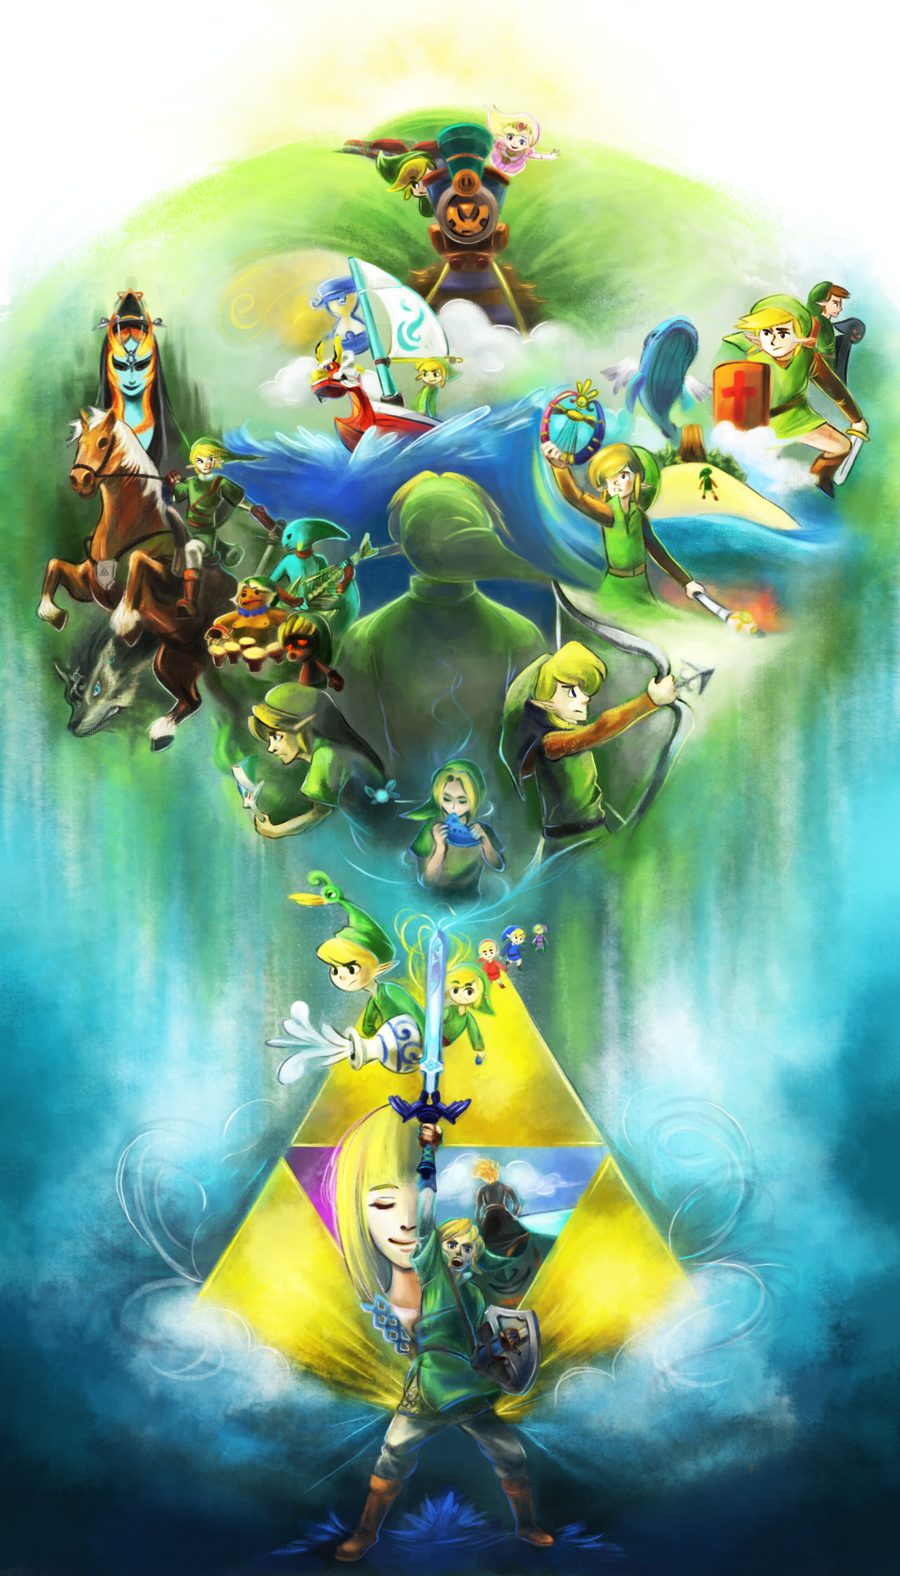 25 Years of The Legend of Zelda by WingJourneys